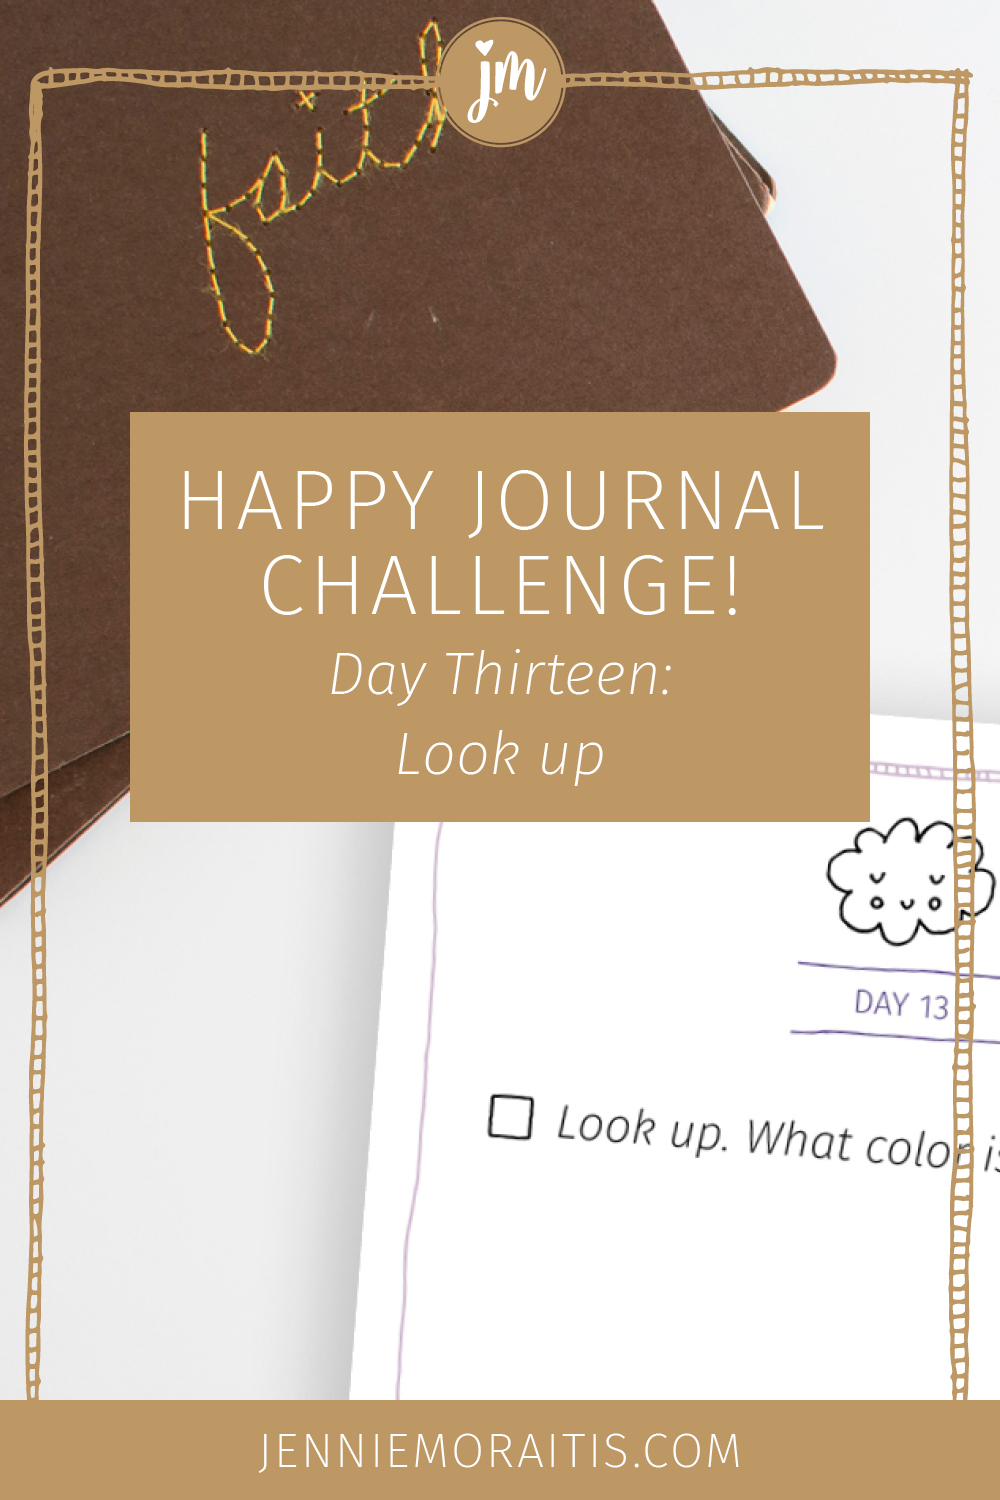 Welcome to Day 13 in our Happy Journal Challenge. Today we are going to look up and outside of ourselves for signs of joy and beauty.